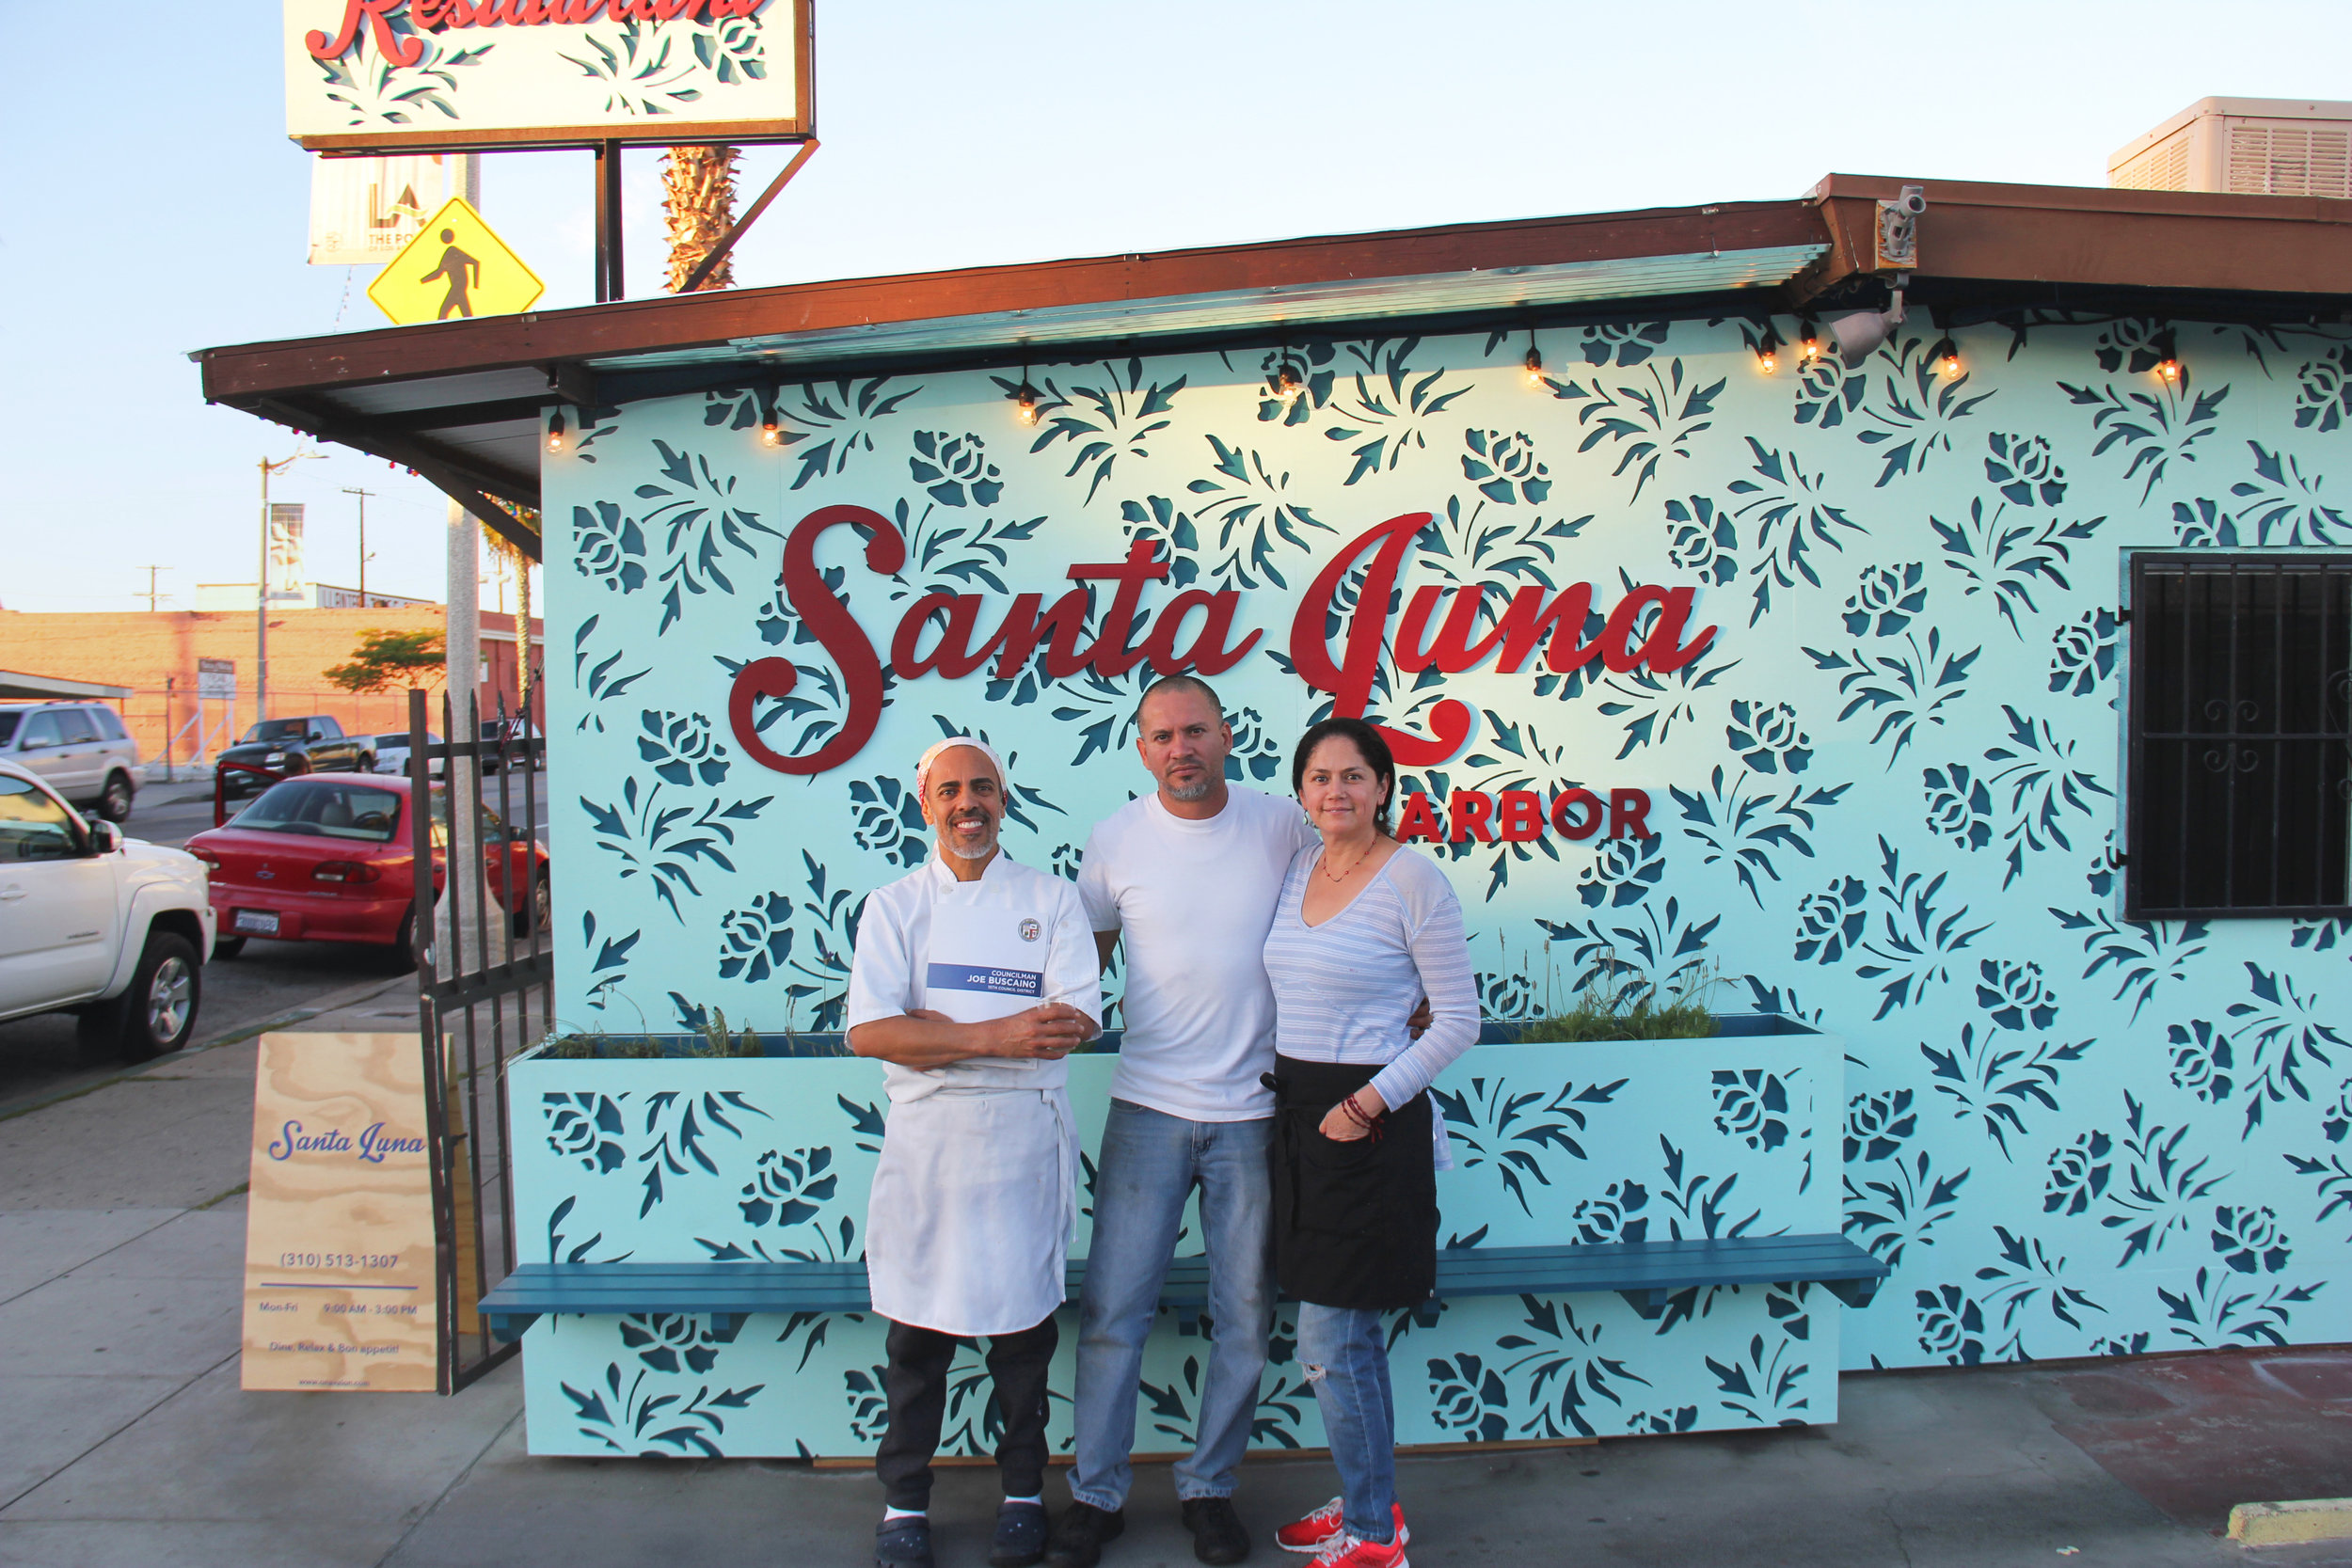 The owners of Santa Luna restaurant in Wilmington – Antonio, Jose, and Teresa – stand in front of their new exterior that was designed to match their vibrant interior. (This project was part of the On Avalon: Small Business Support Program.)